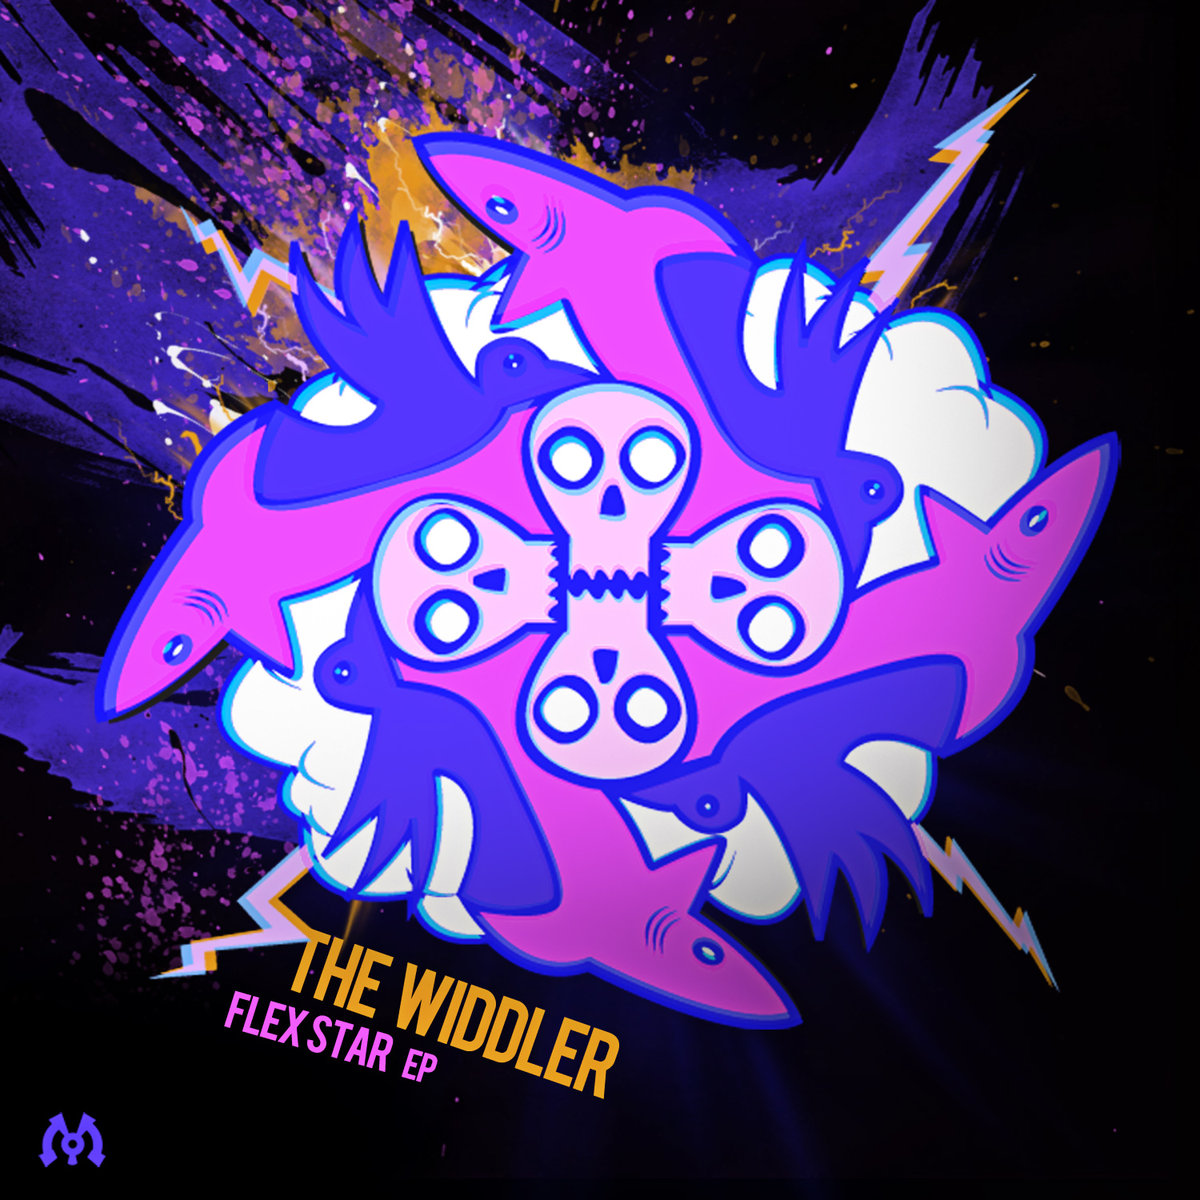 The Widdler - Flexstar (El Diablo Remix) @ 'Flexstar' album (electronic, dubstep)